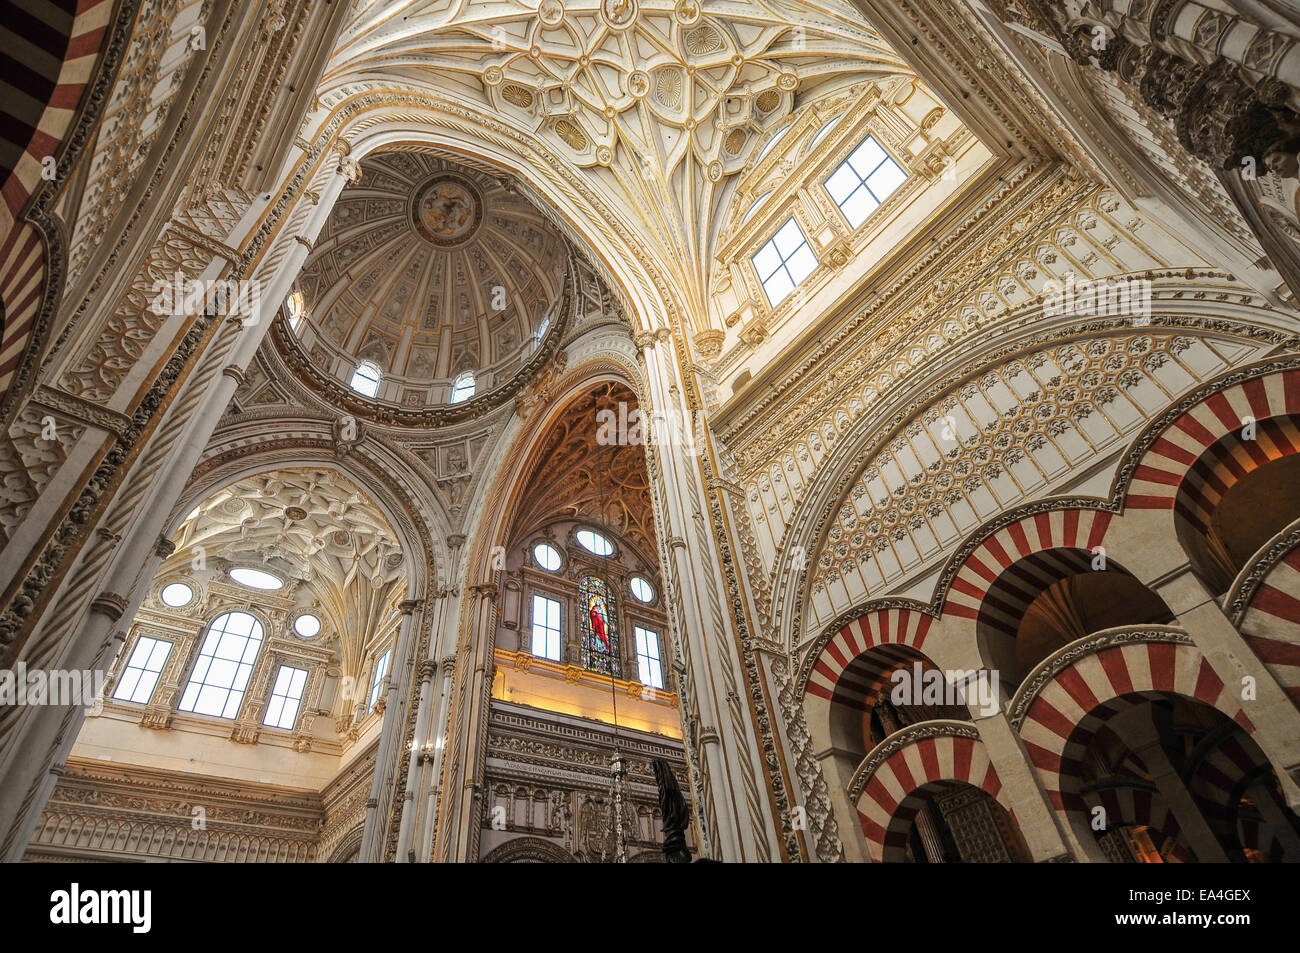 how to say mosque in spanish